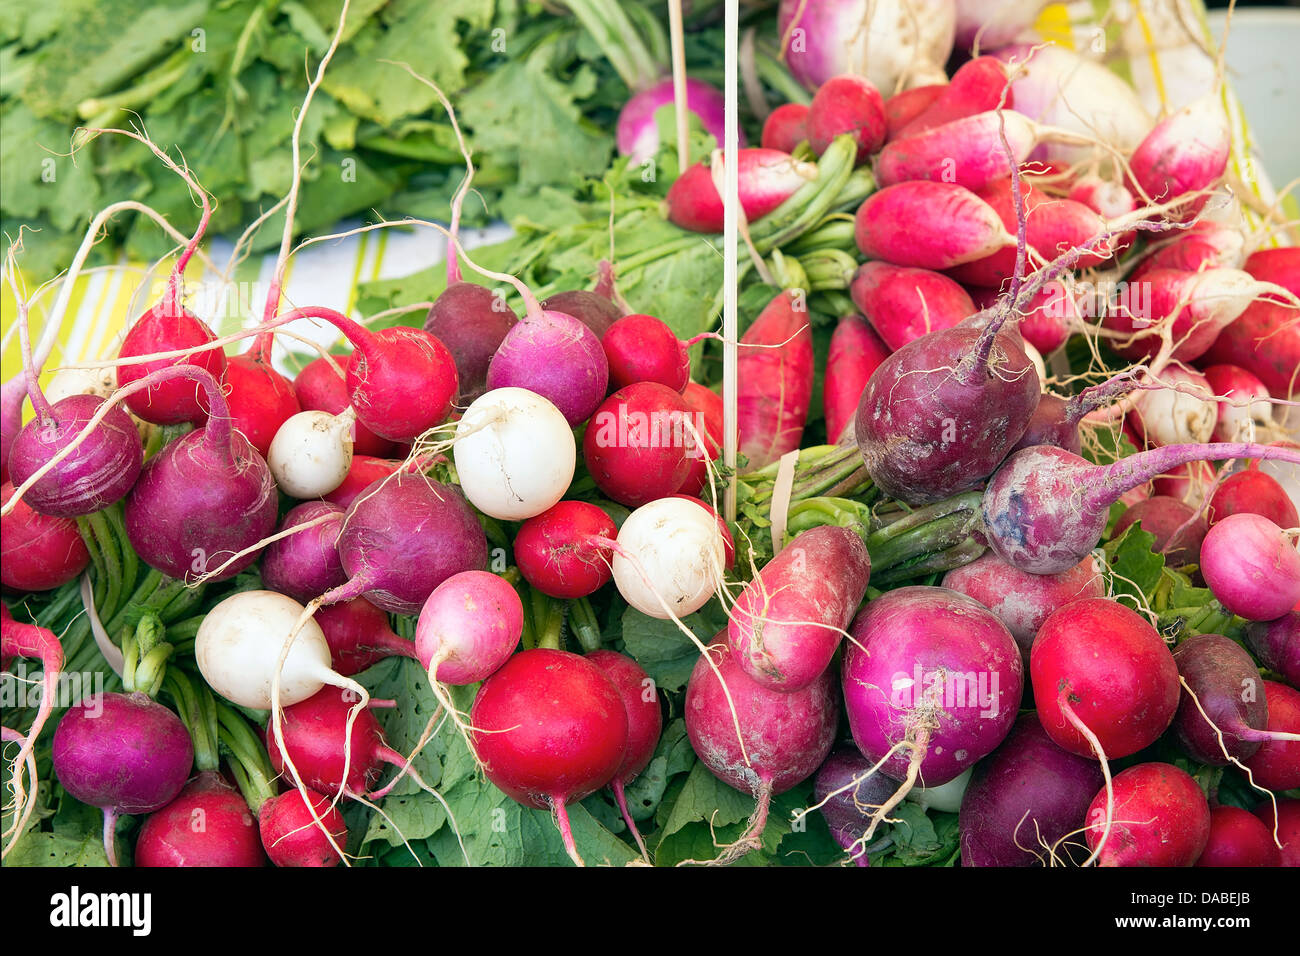 Heirloom and Easter Egg Colorful Radish Bunches at Farmers Market Fruits and Vegetables Stall - Stock Image